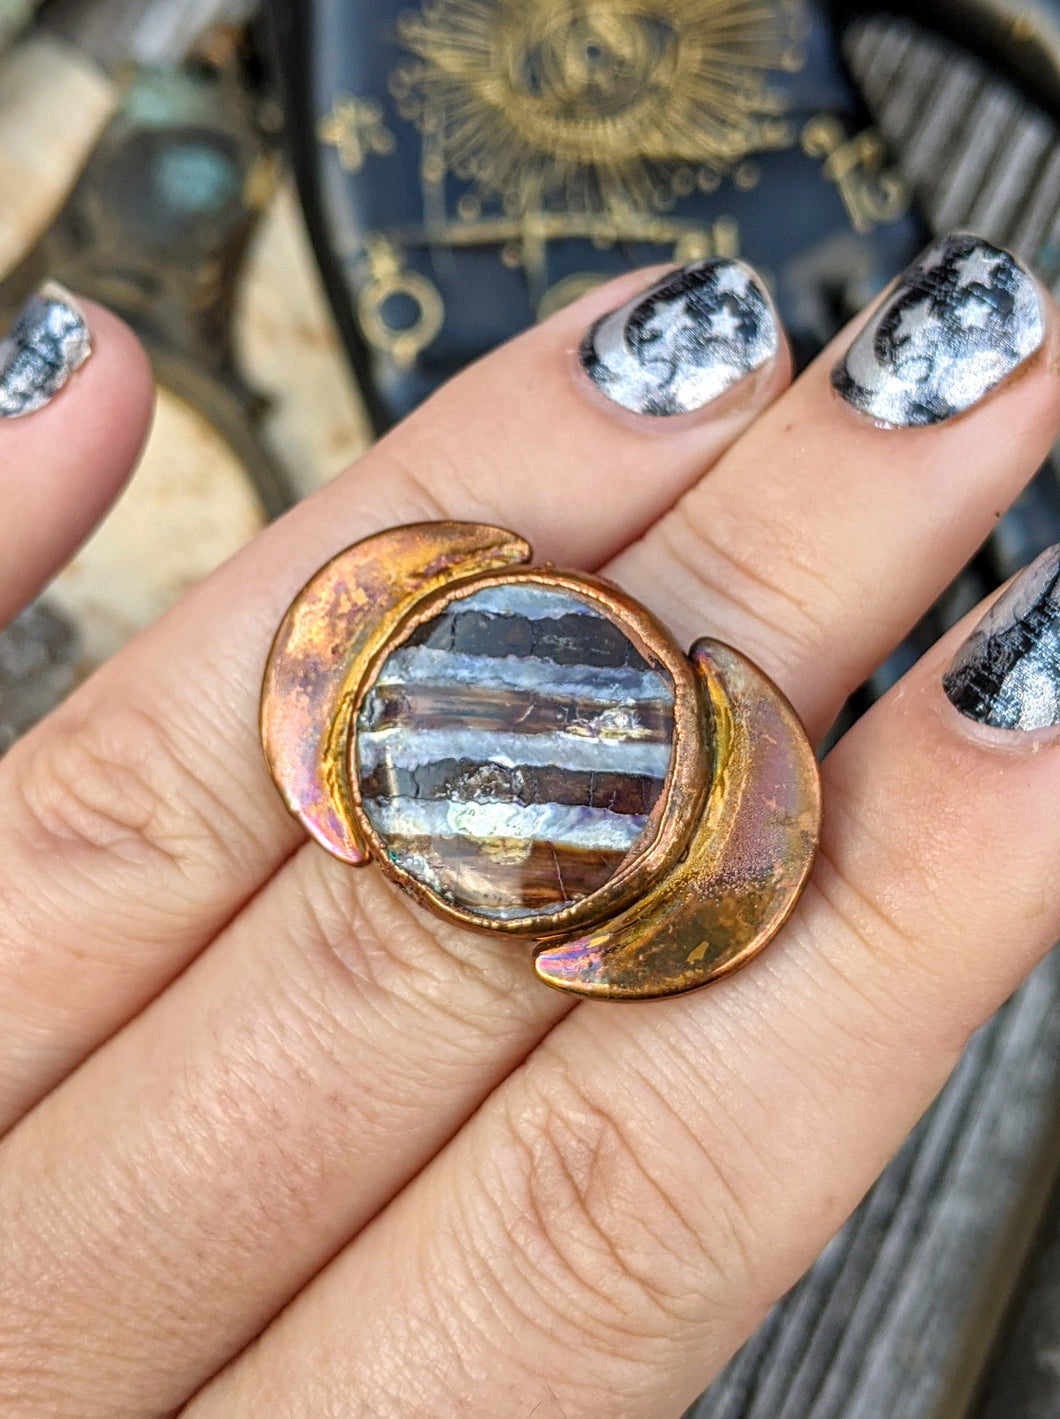 Copper Electroformed Fossilized Mammoth Tooth and Moons Ring - Size 10.5